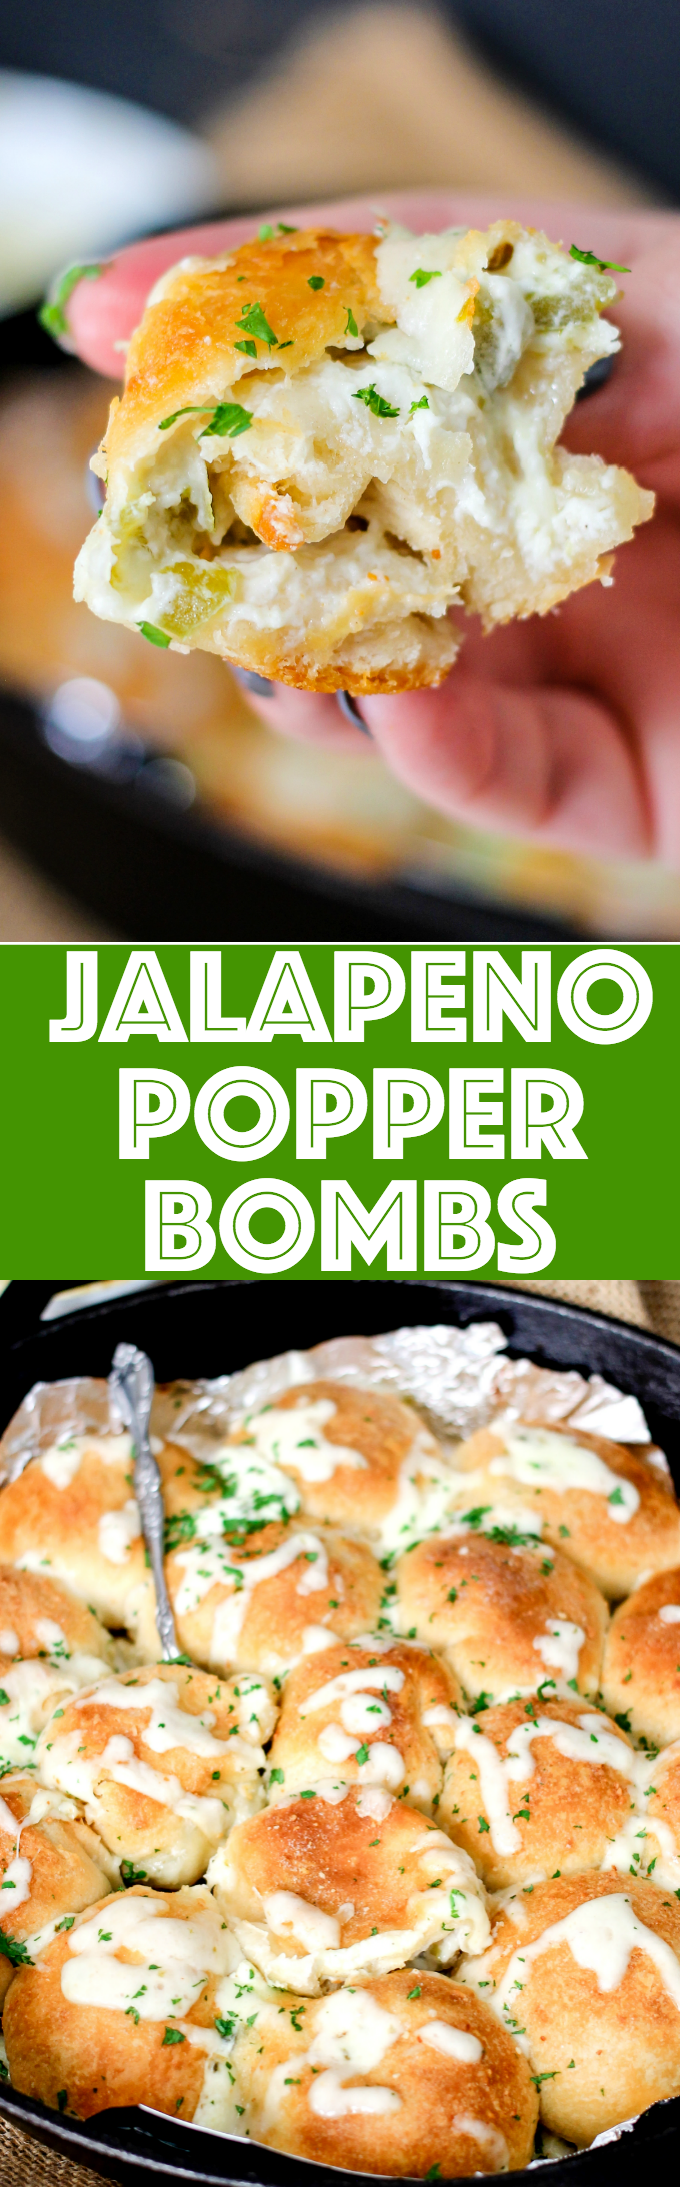 Jalapeno Popper Bombs are filled with spicy jalapenos, cream cheese, pepper jack cheese, and then baked to golden perfection. They're the perfect appetizer!